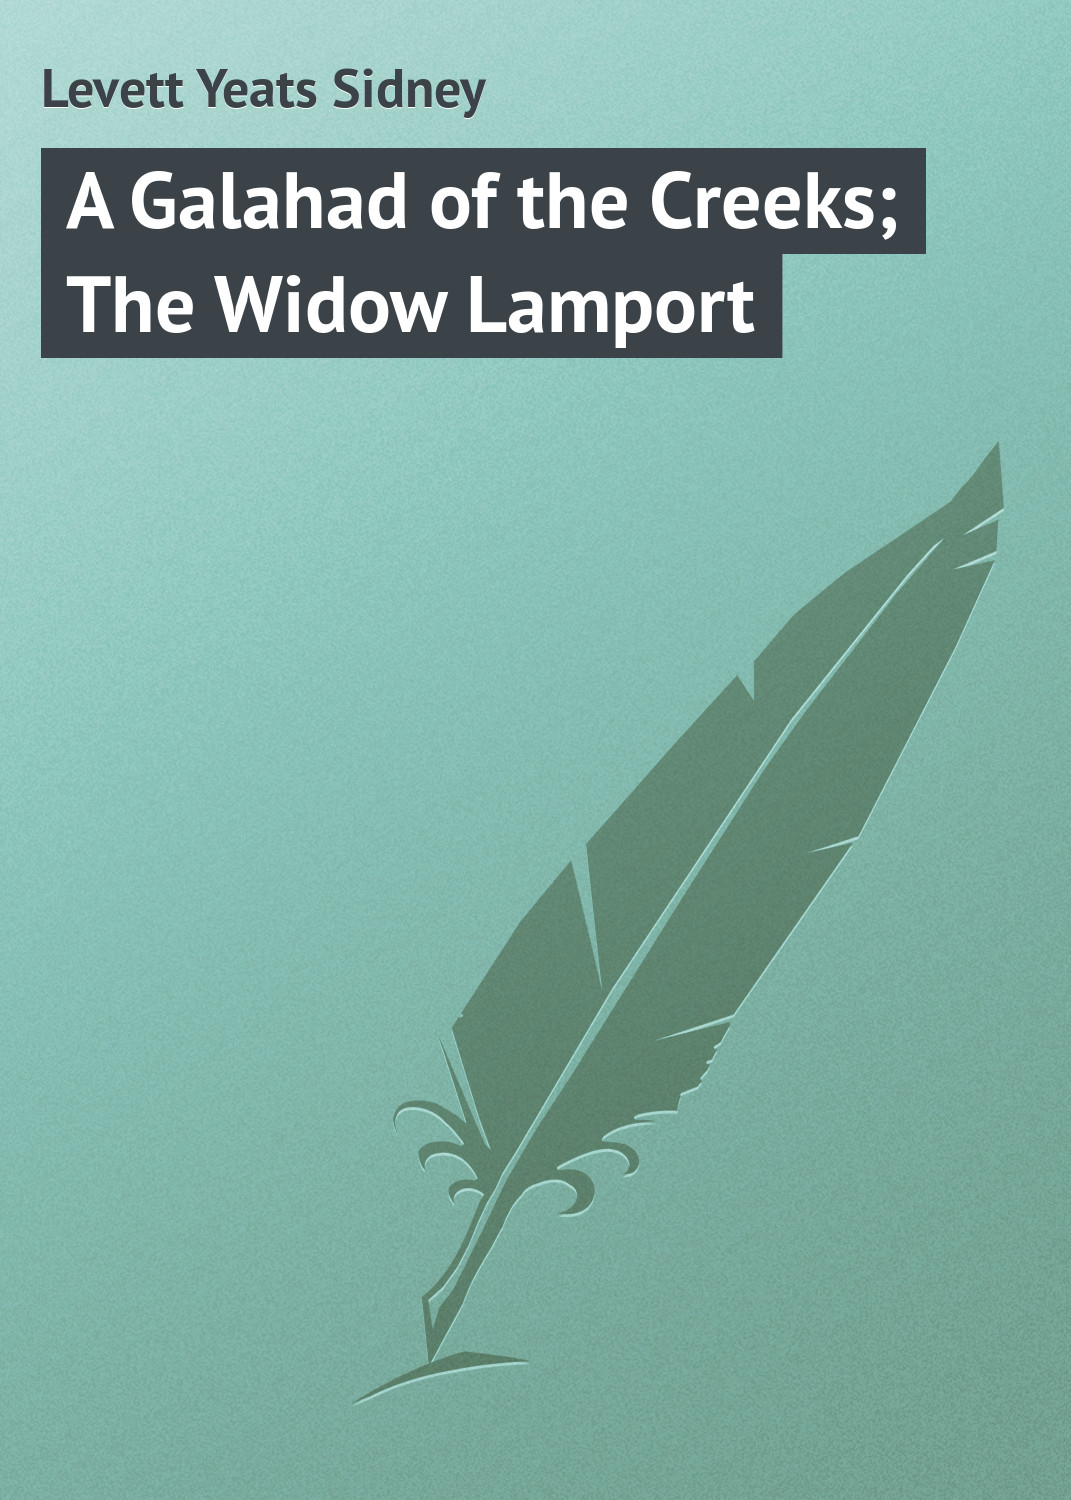 Levett Yeats Sidney A Galahad of the Creeks; The Widow Lamport